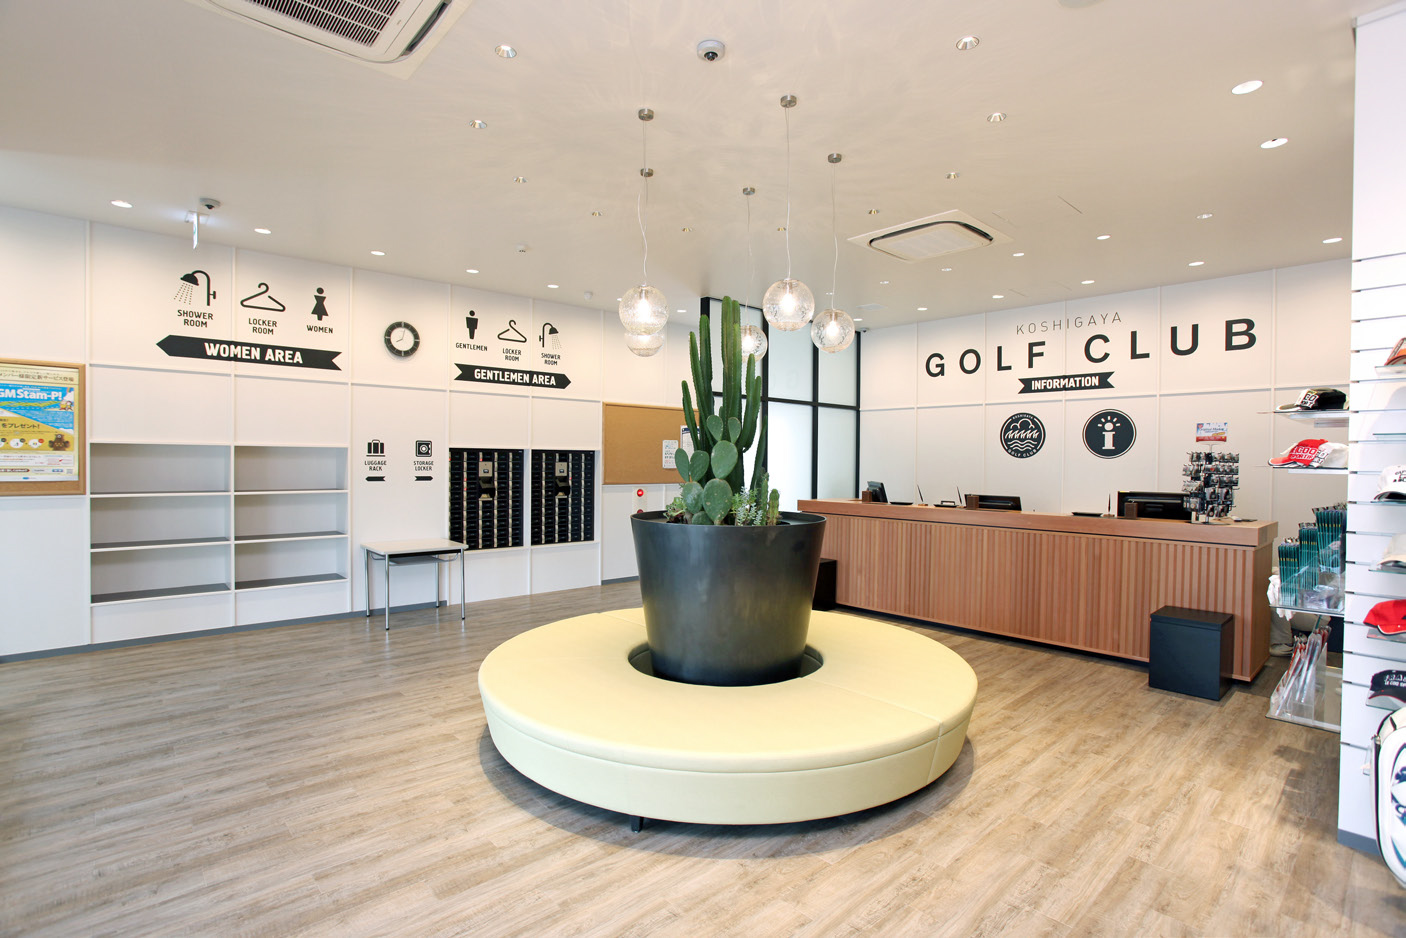 KOSHIGAYA GOLF CLUB